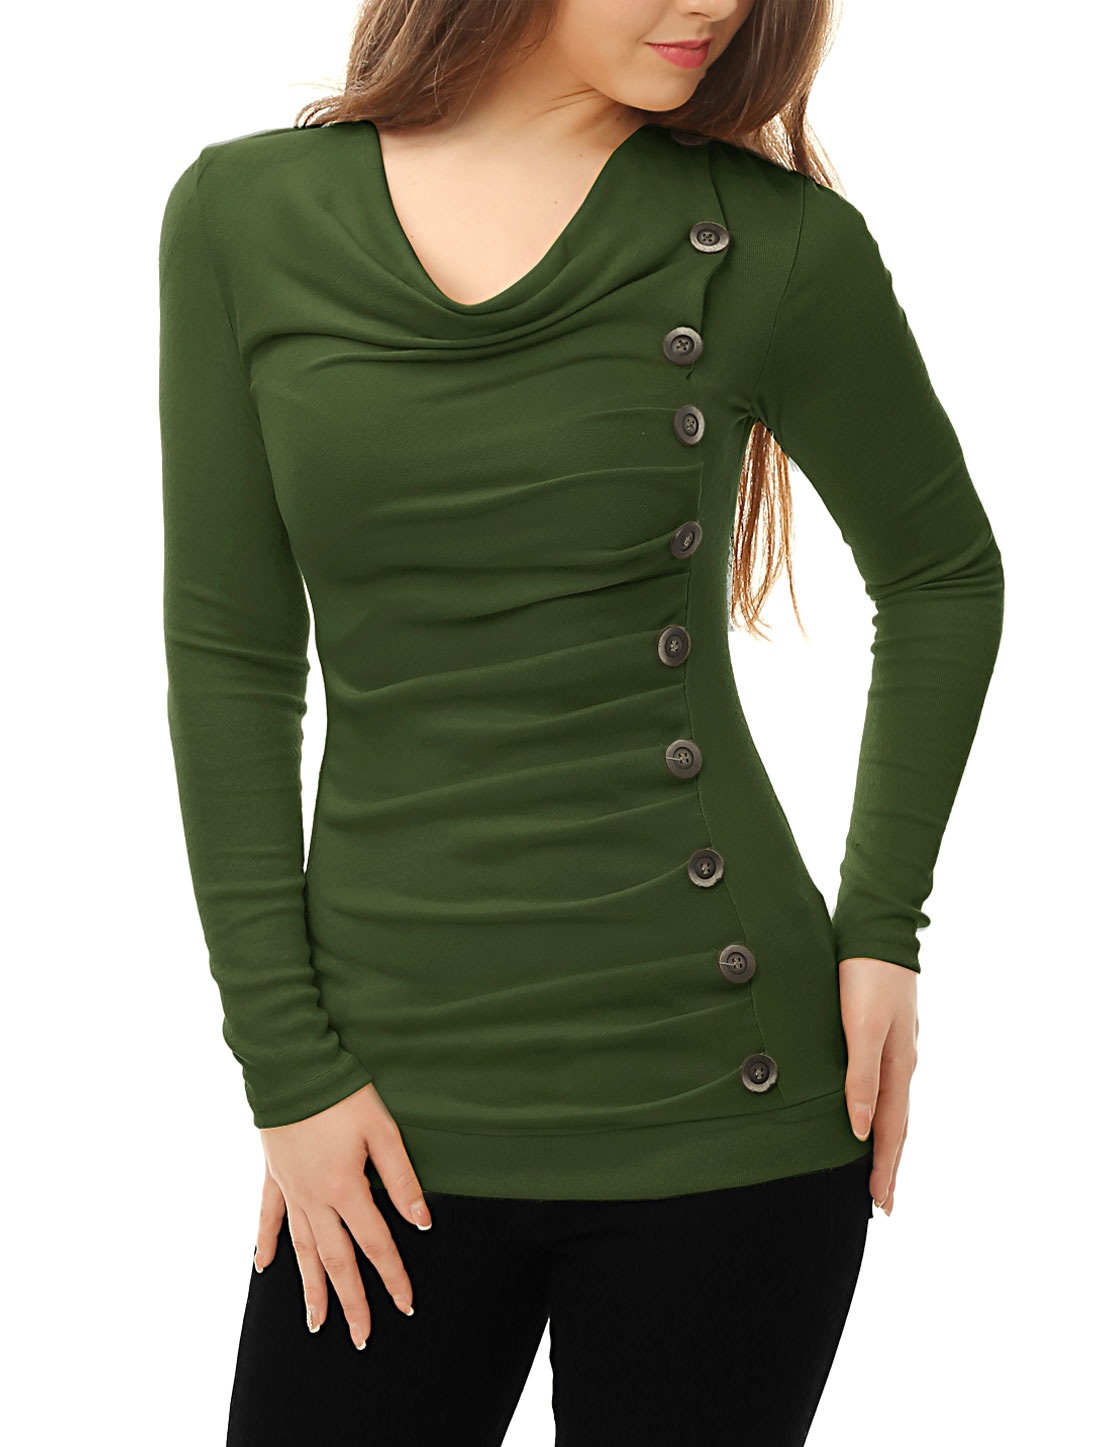 Women Cowl Neck Long Sleeves Buttons Decor Ruched Top Green L